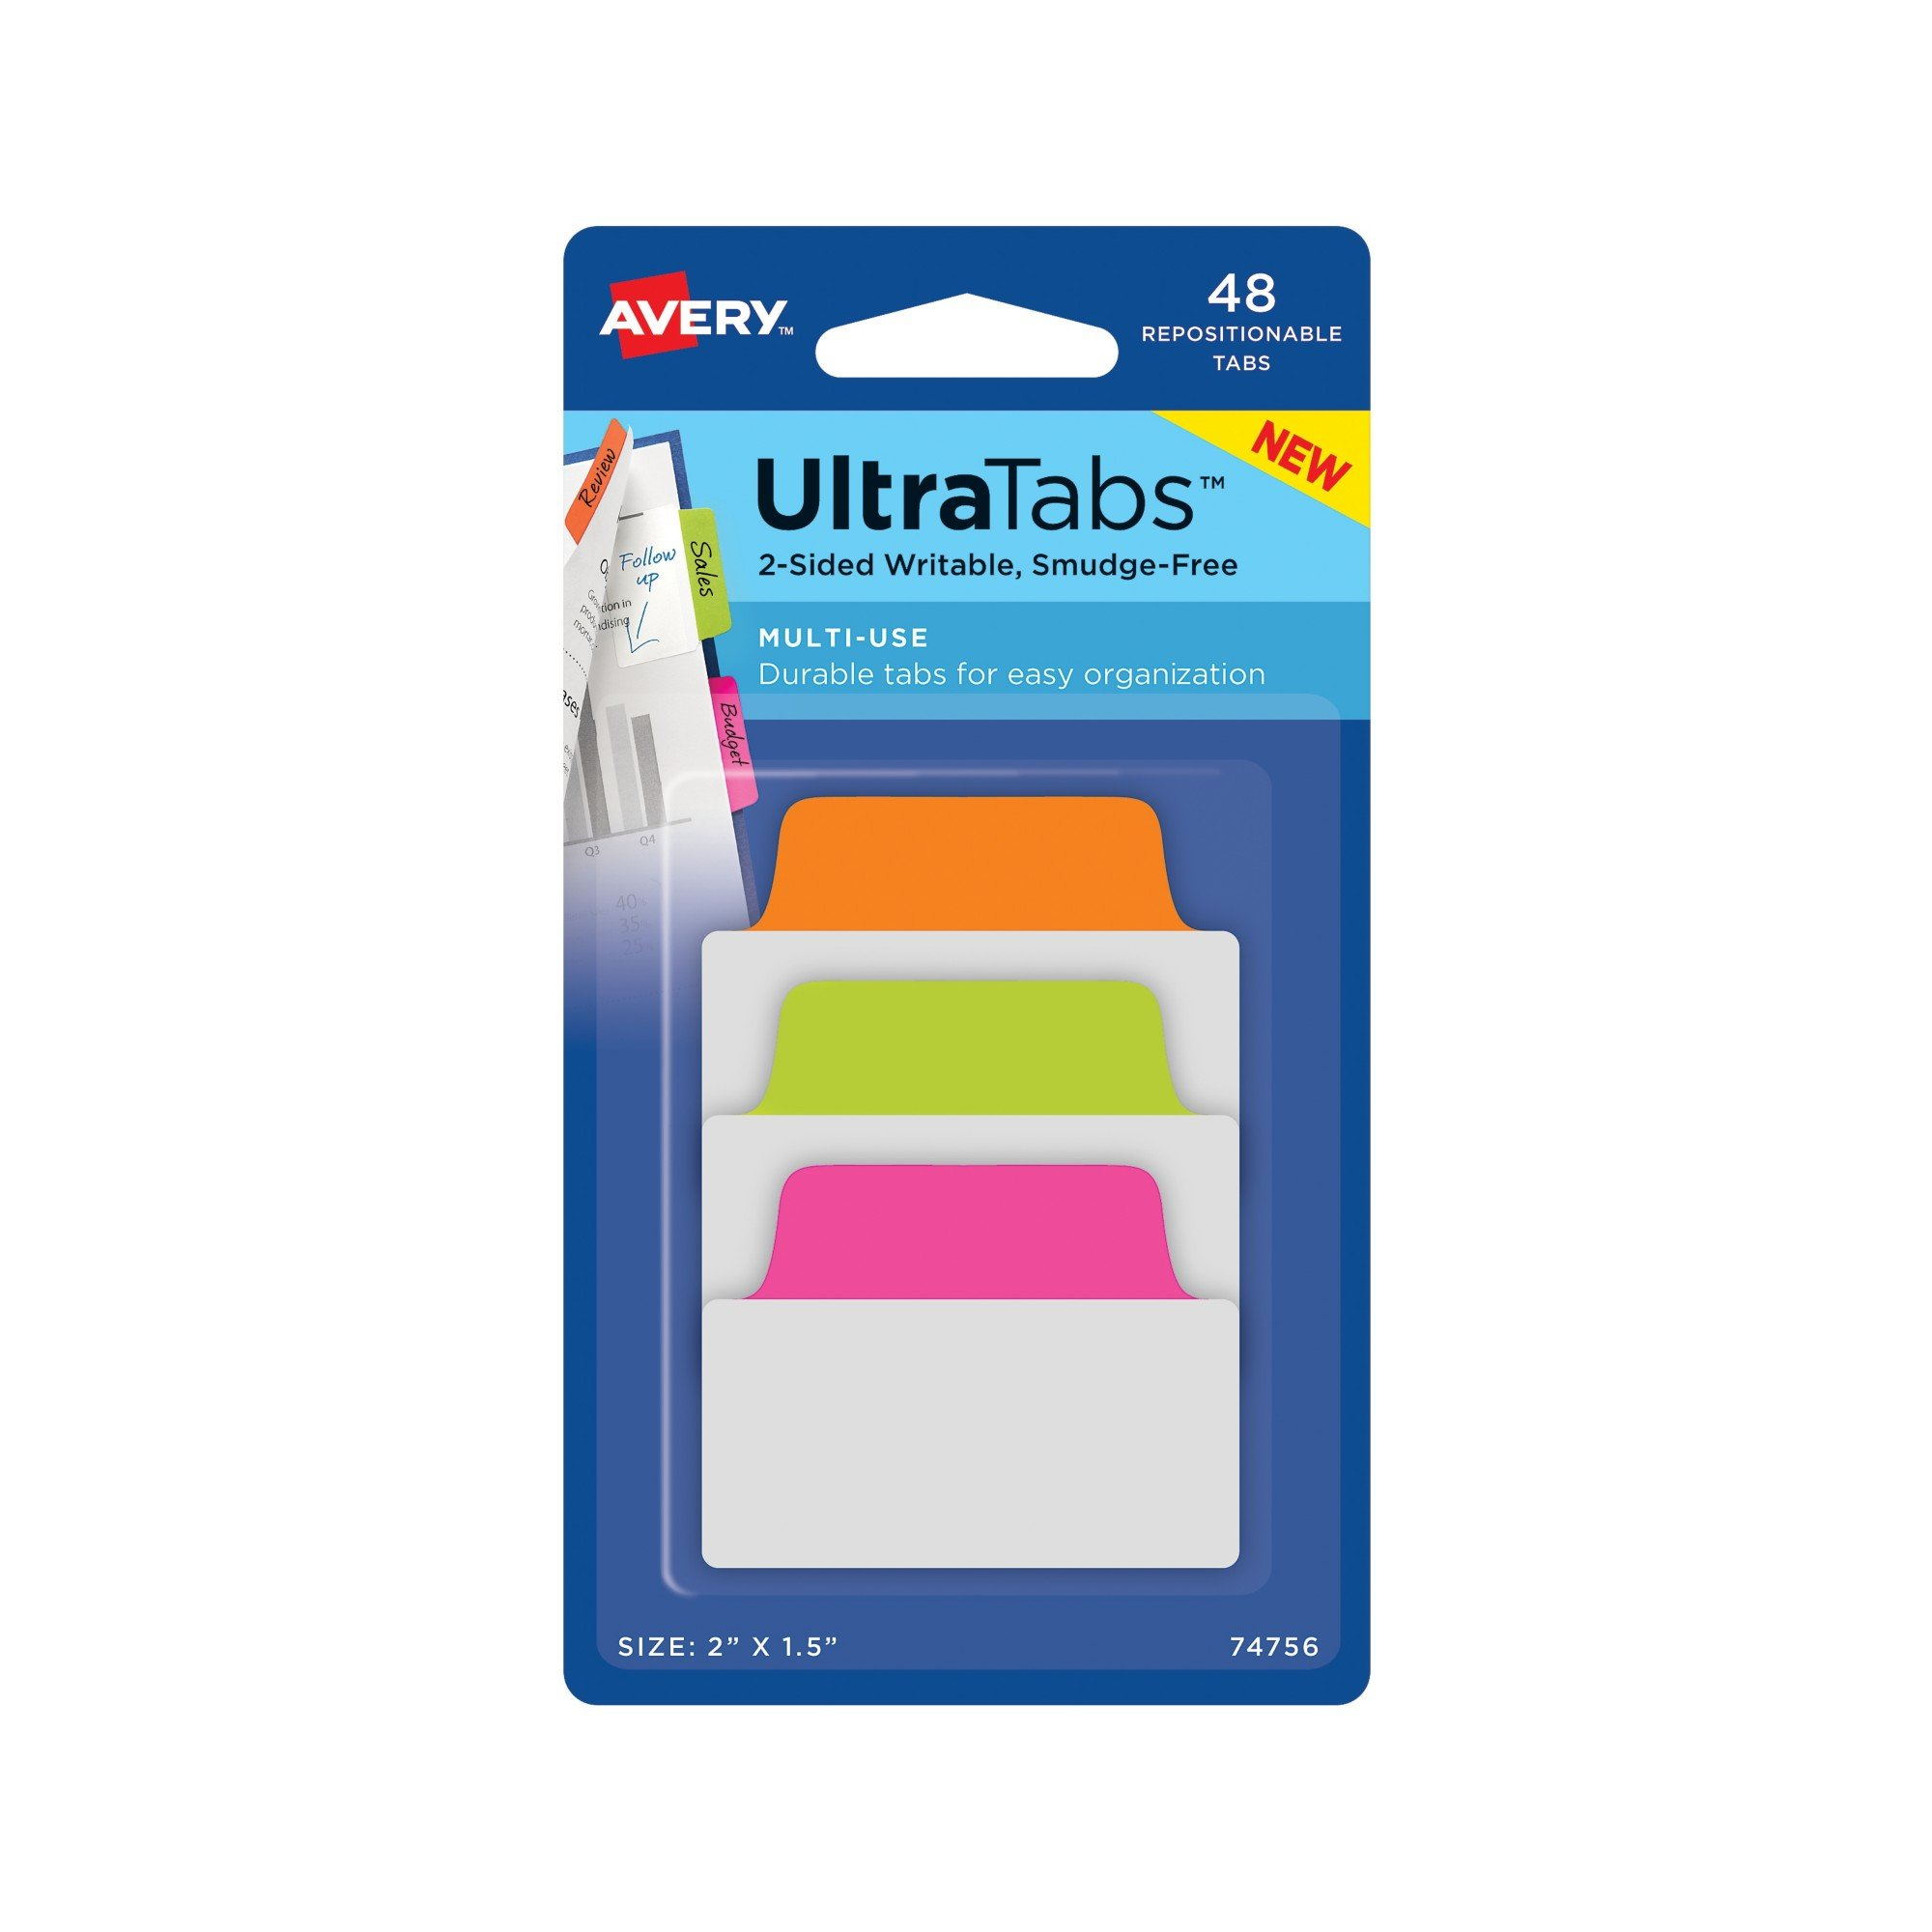 Avery Multiuse Ultra Tabs, 2'' x 1.5'', 2-Side Writable, Neon Pink/Green/Orange, 48 Repositionable Tabs (74756)